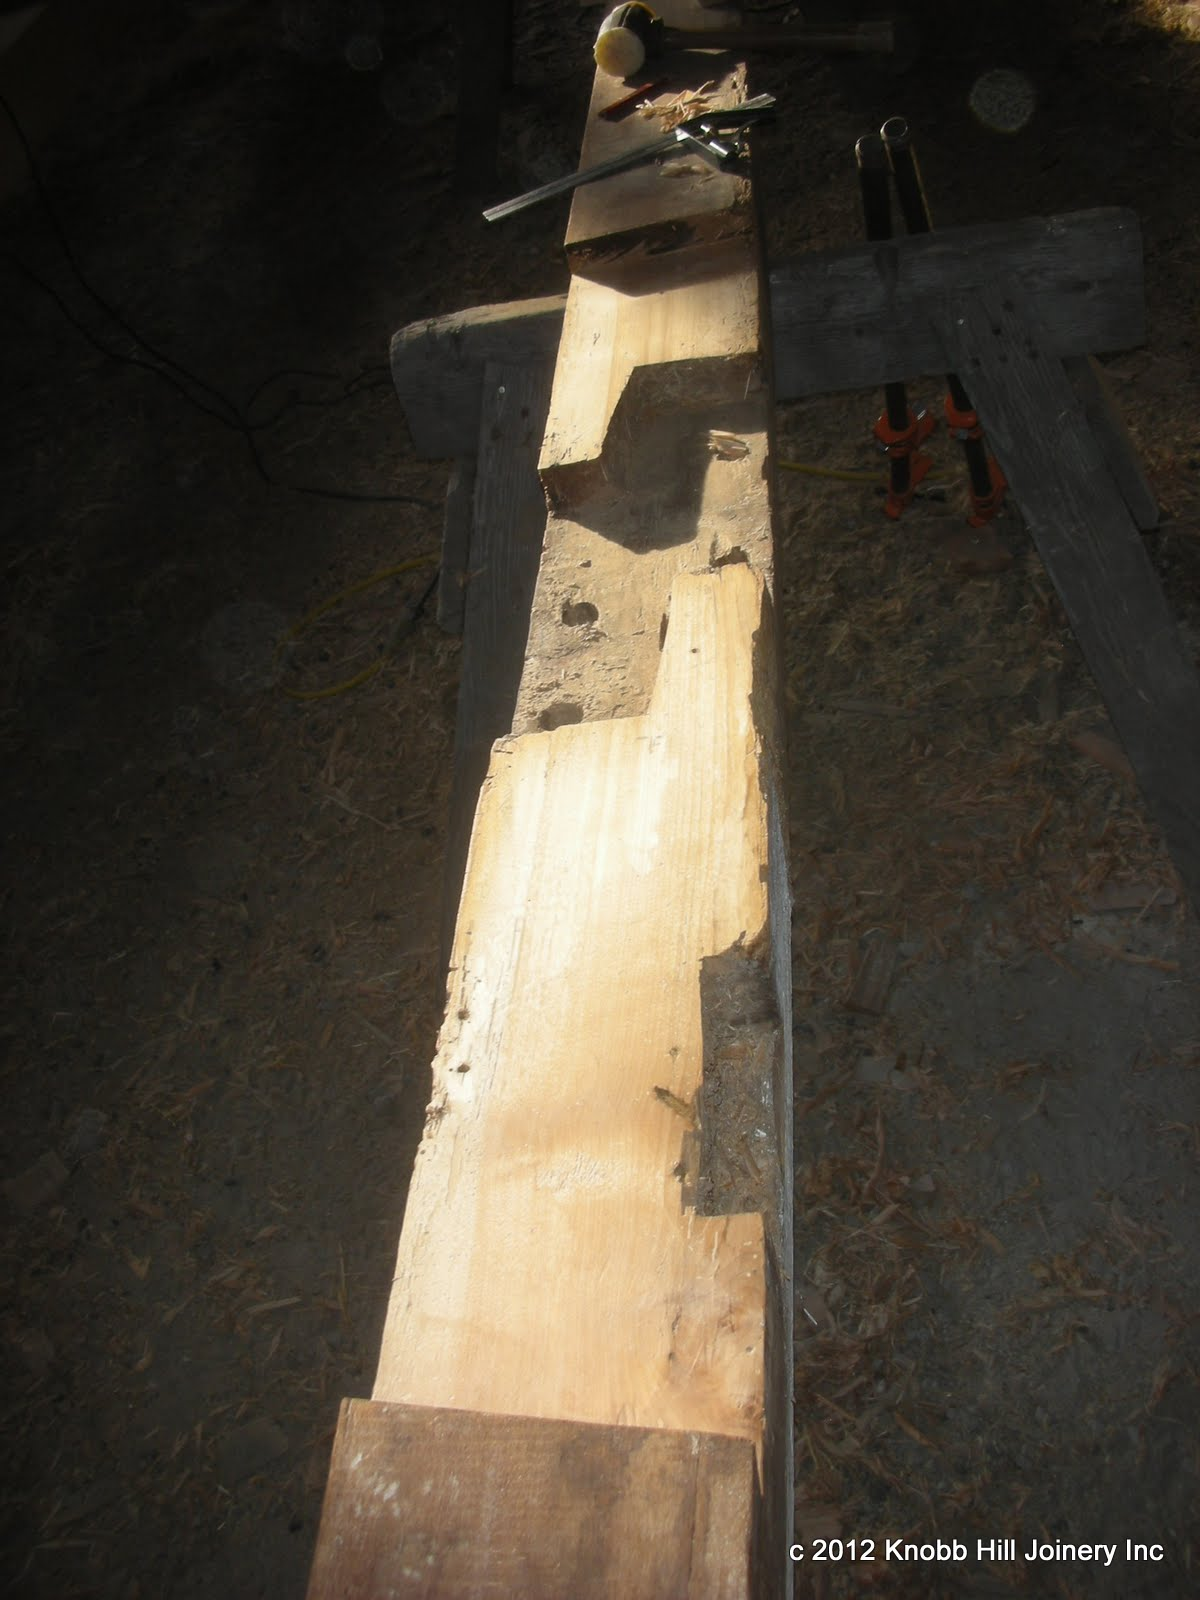 The shoulders of the post from the preceding photo were extremely deteriorated but the remaining wood was sound.